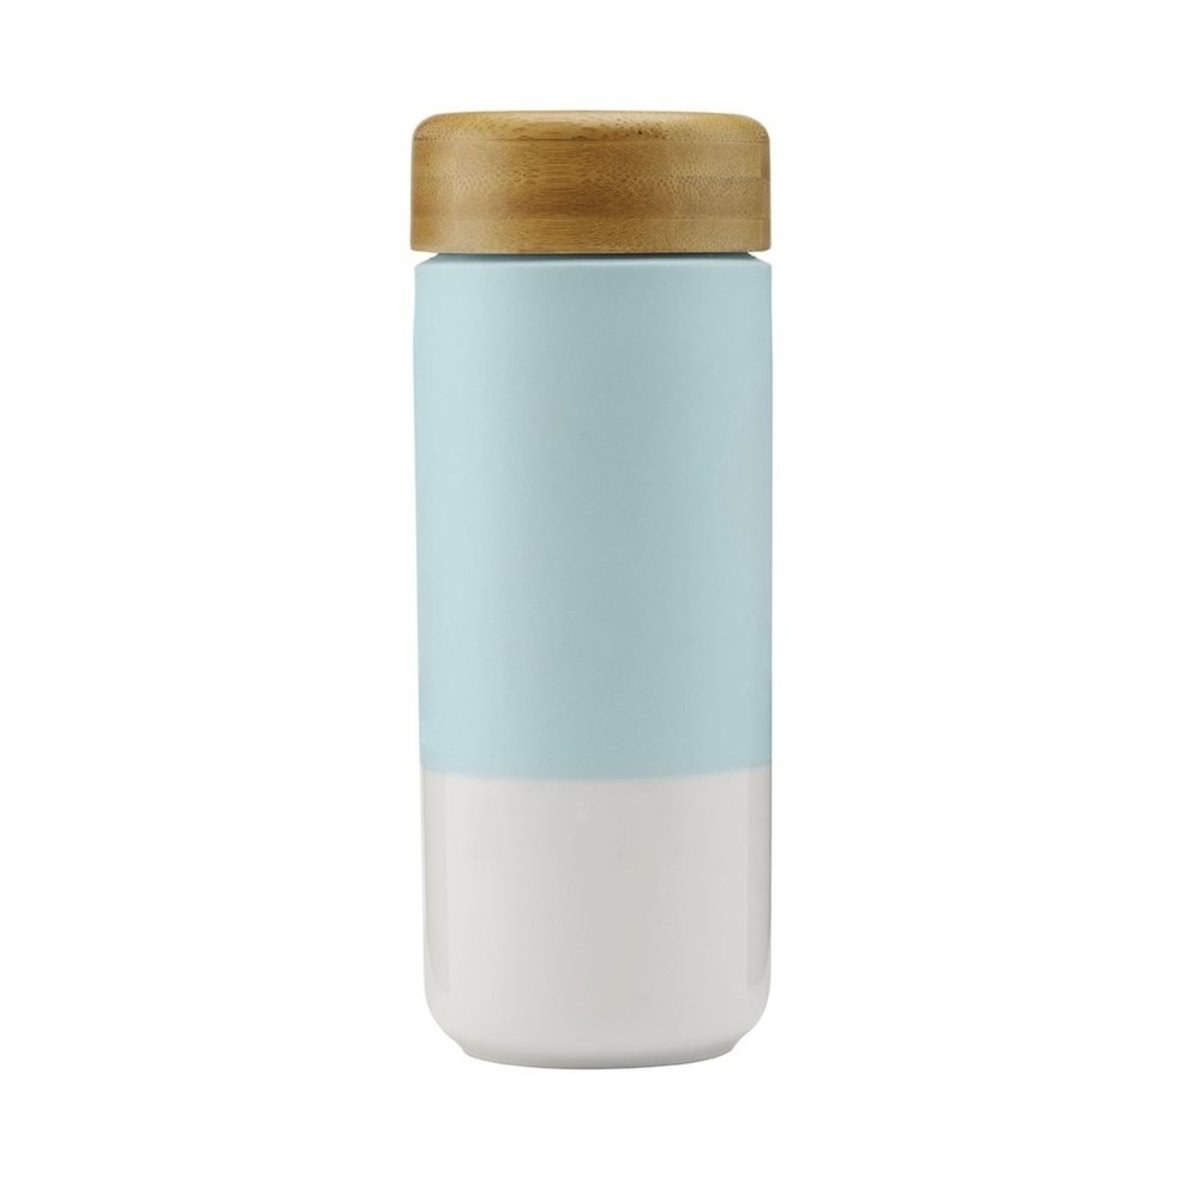 Insulated Ceramic Mug with Bamboo Lid 375ml - Mint Green